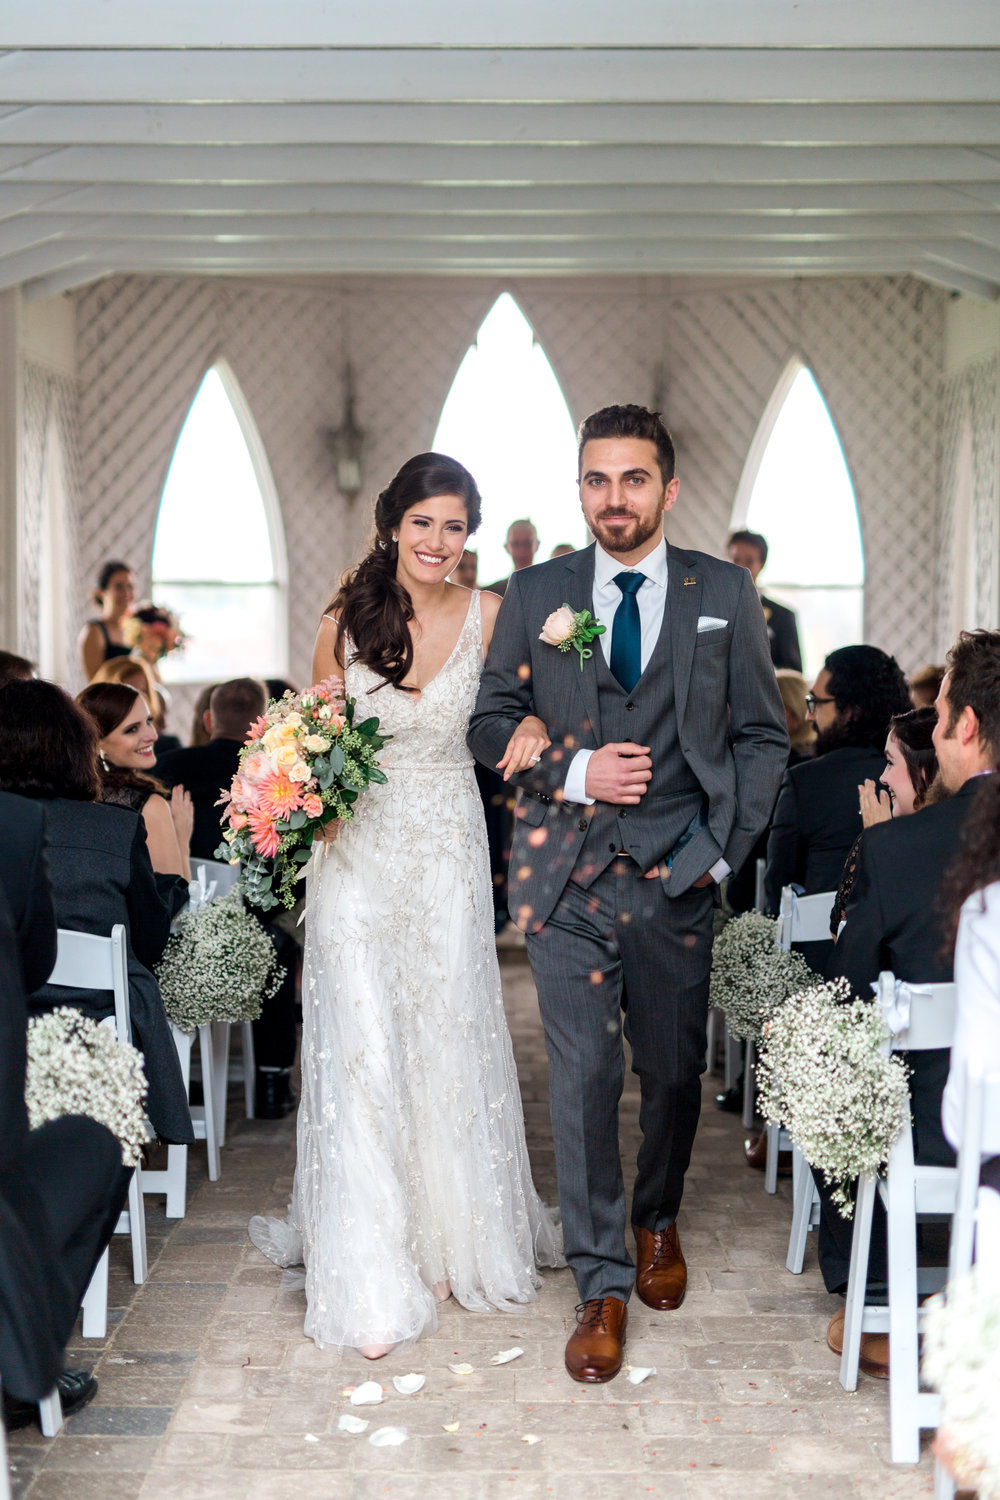 Amir-Golbazi-Danielle-Giroux-Photography_Toronto-Wedding_Cedarwood_Rachel-Paul_238.jpg